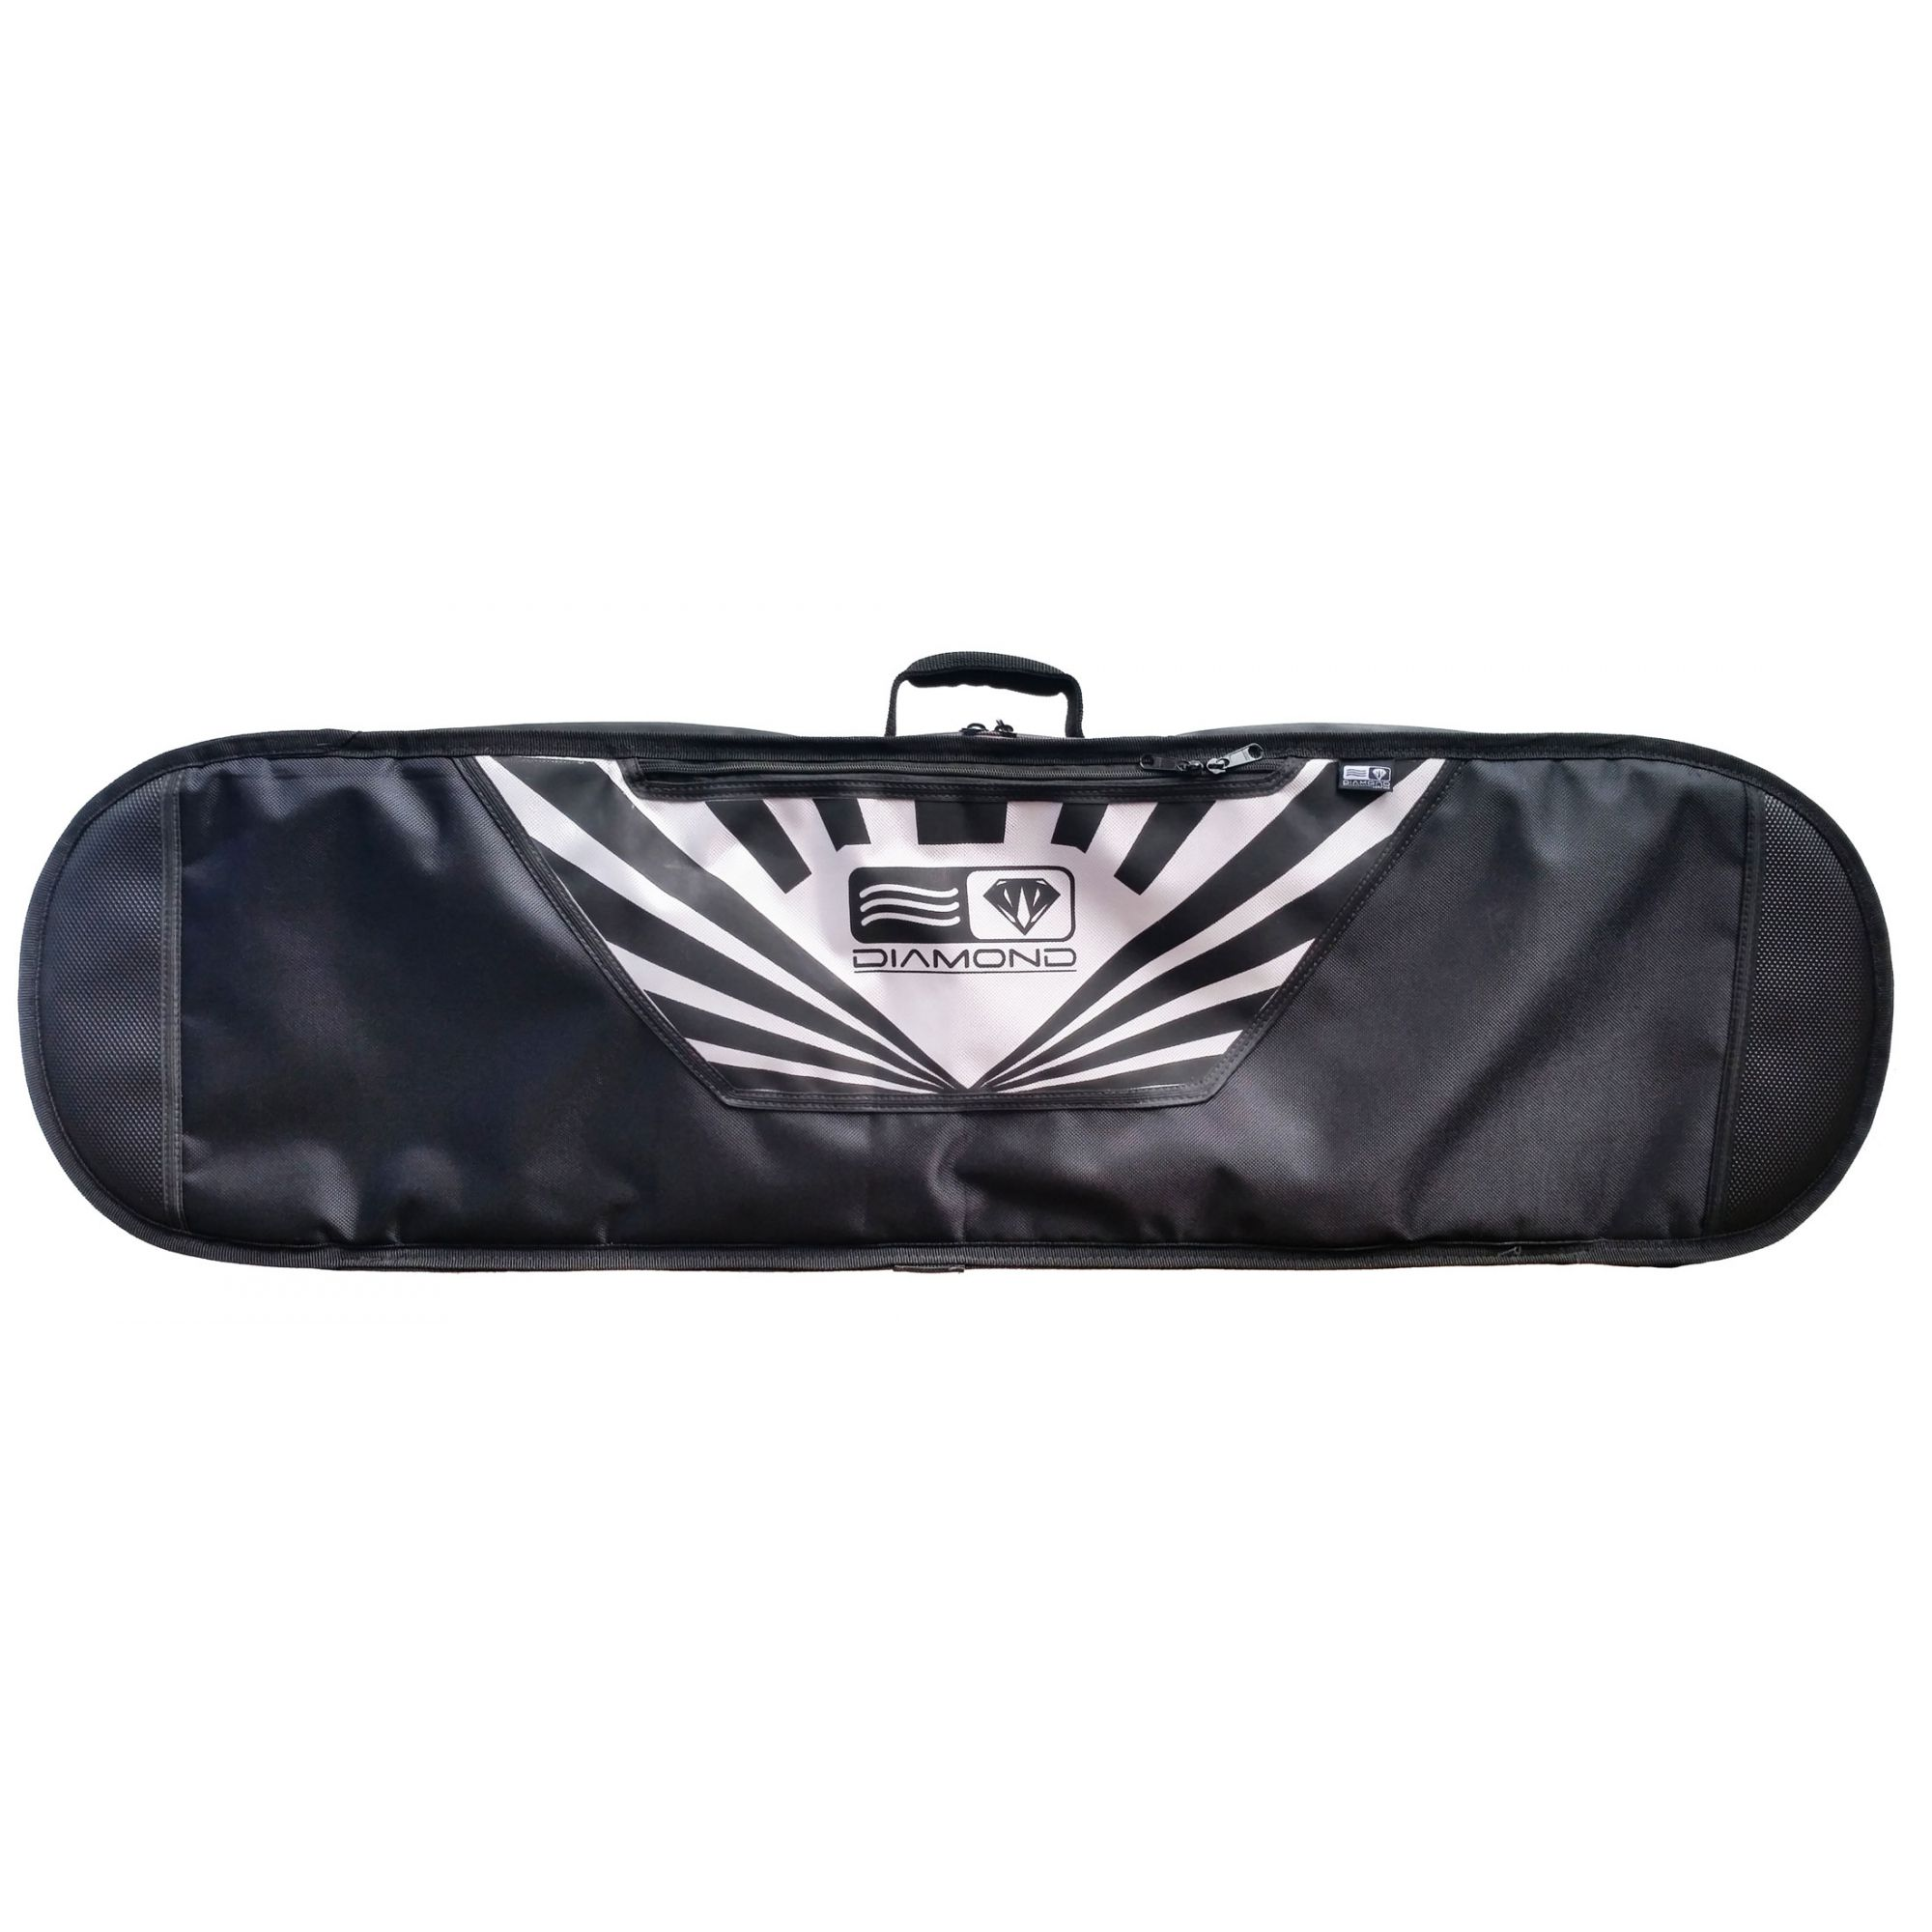 Capa Skate bag Longboard 125cm  x 30cm Diamond Surfing